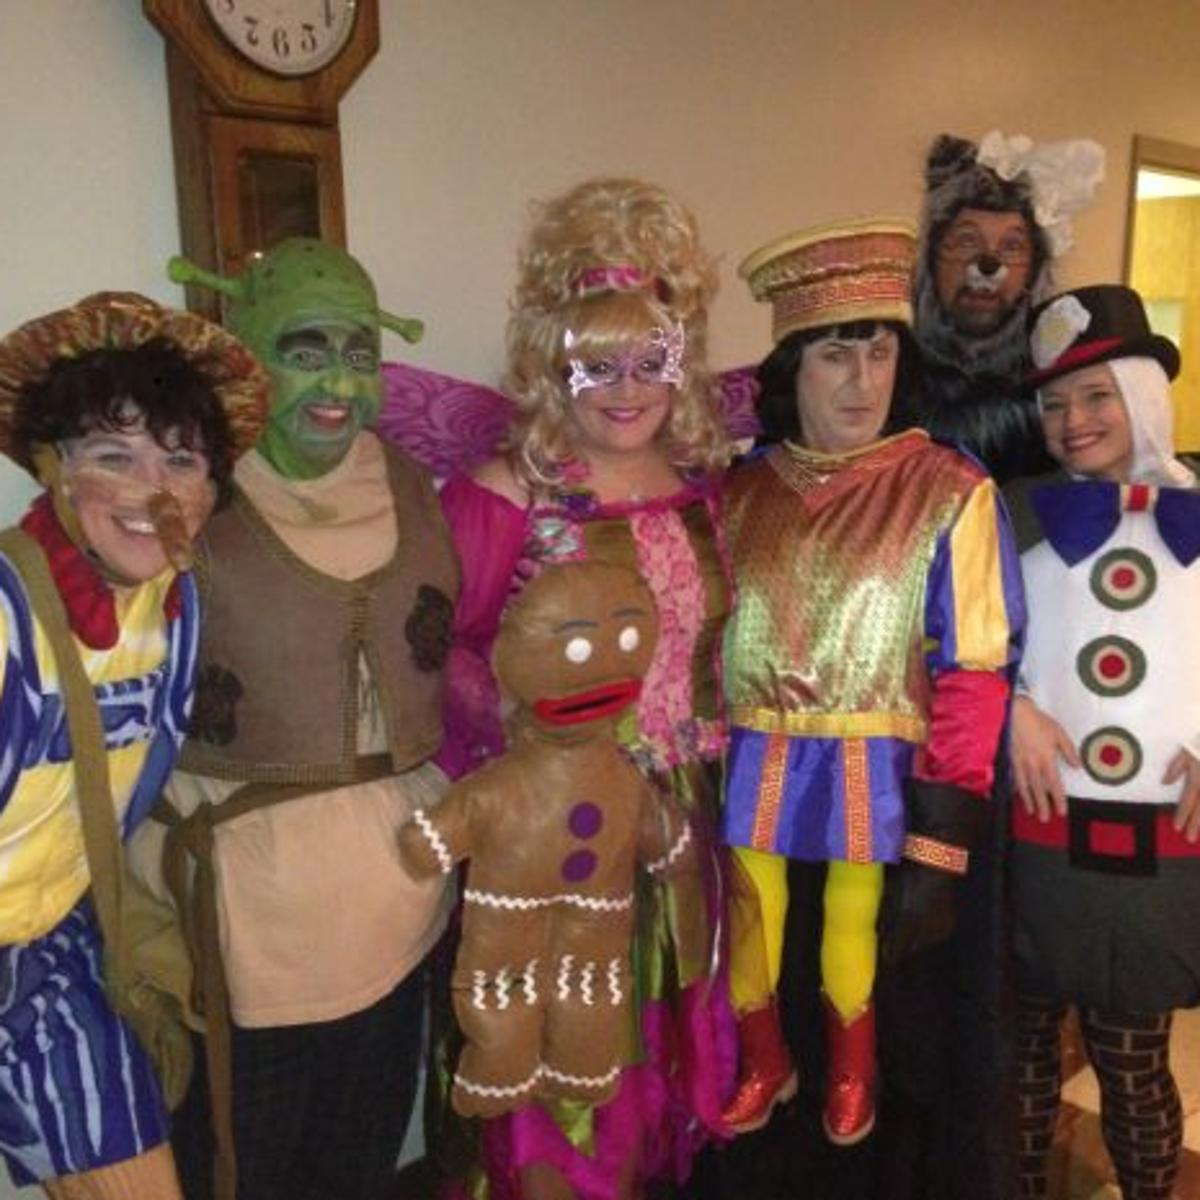 Going Green Shrek The Musical Ready For Family Fun In Whiting For Marian Theatre Guild Run Arts And Theatre Nwitimes Com